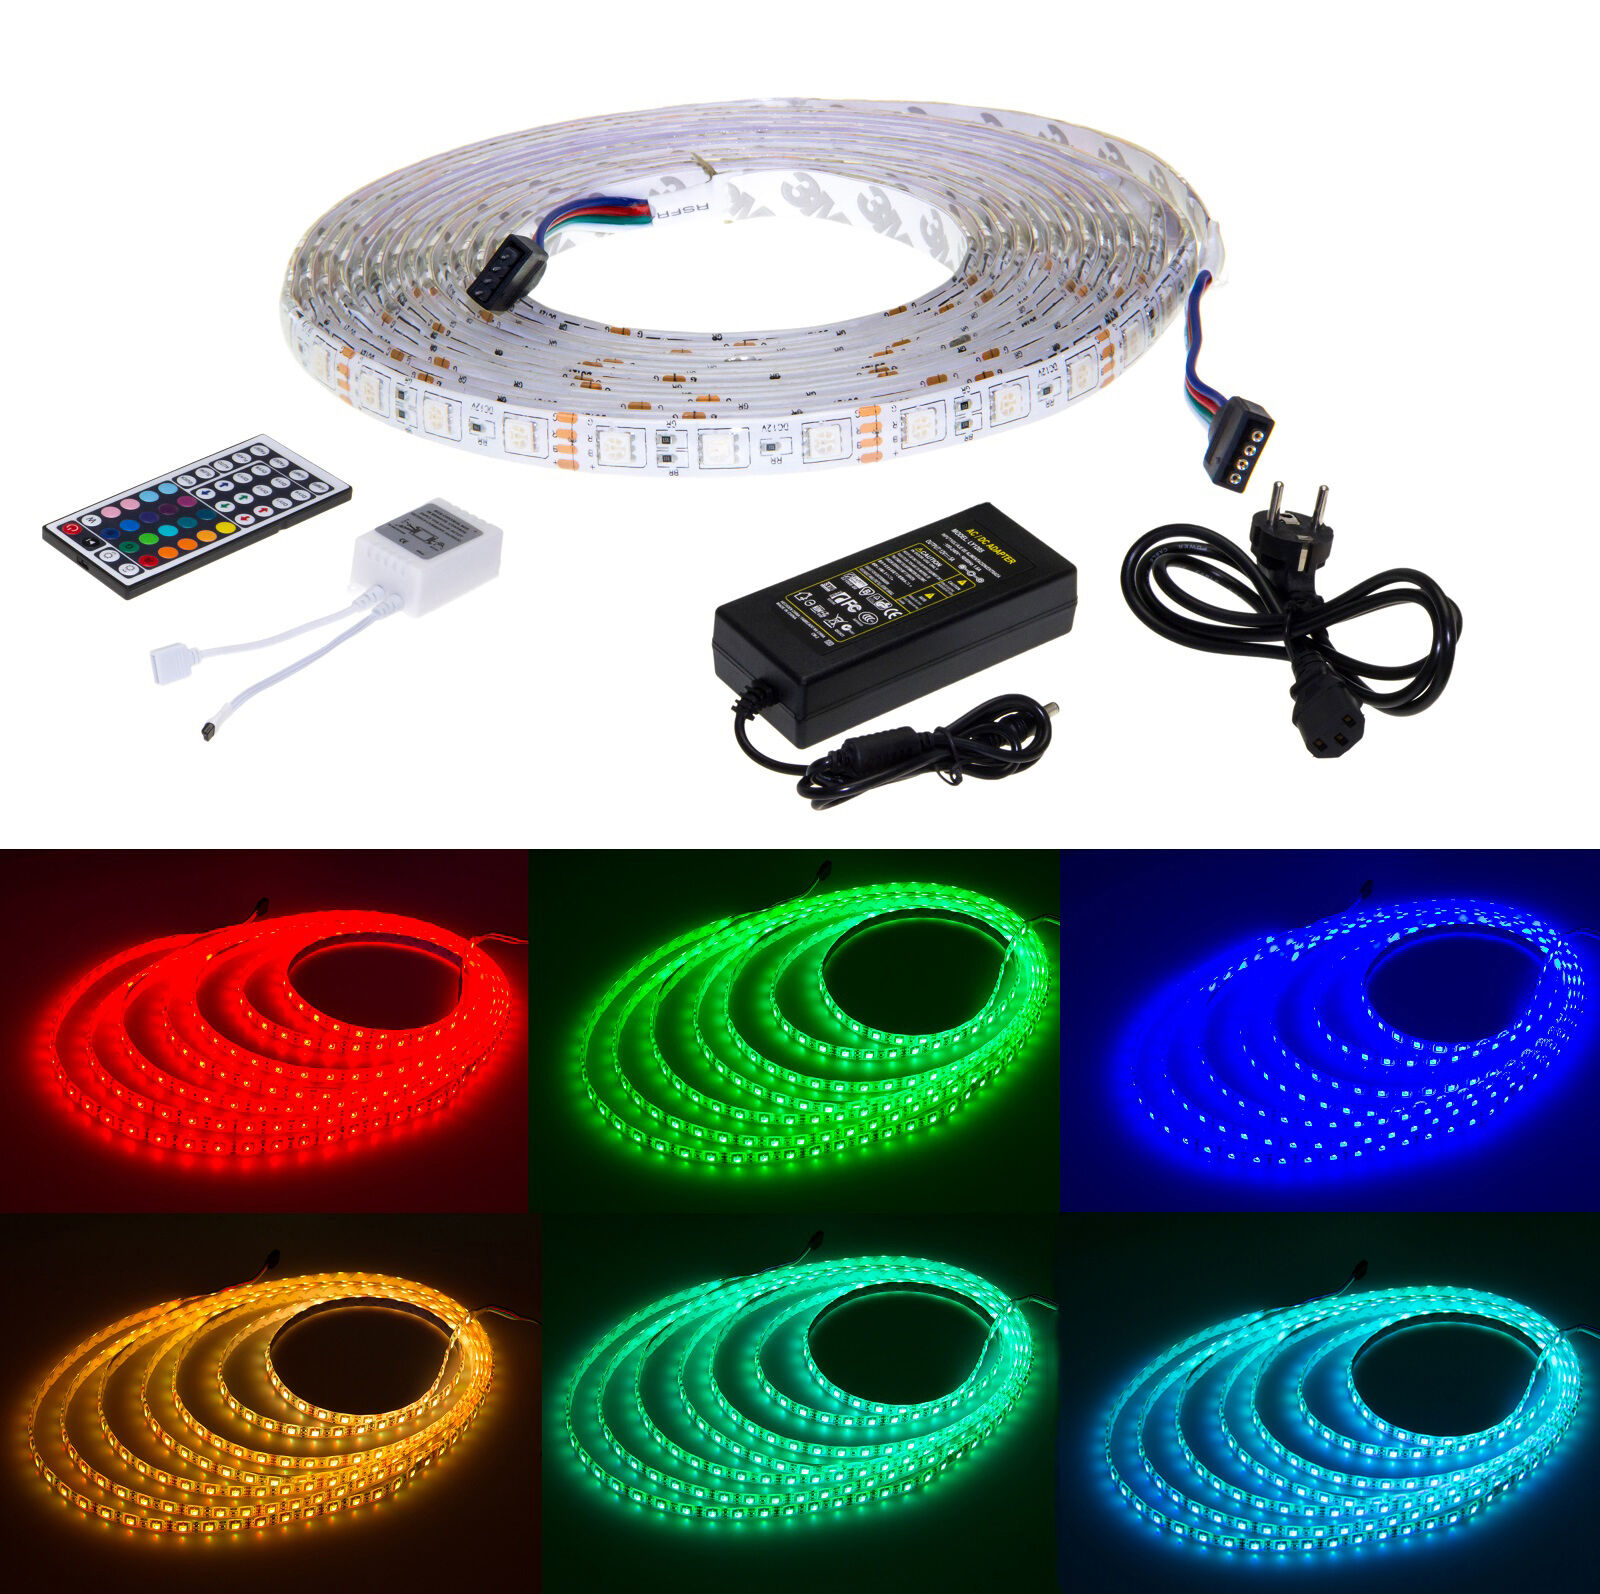 led leiste strip 5m rgb lichterkette lichter streifen smd leuchte band netzteil ebay. Black Bedroom Furniture Sets. Home Design Ideas